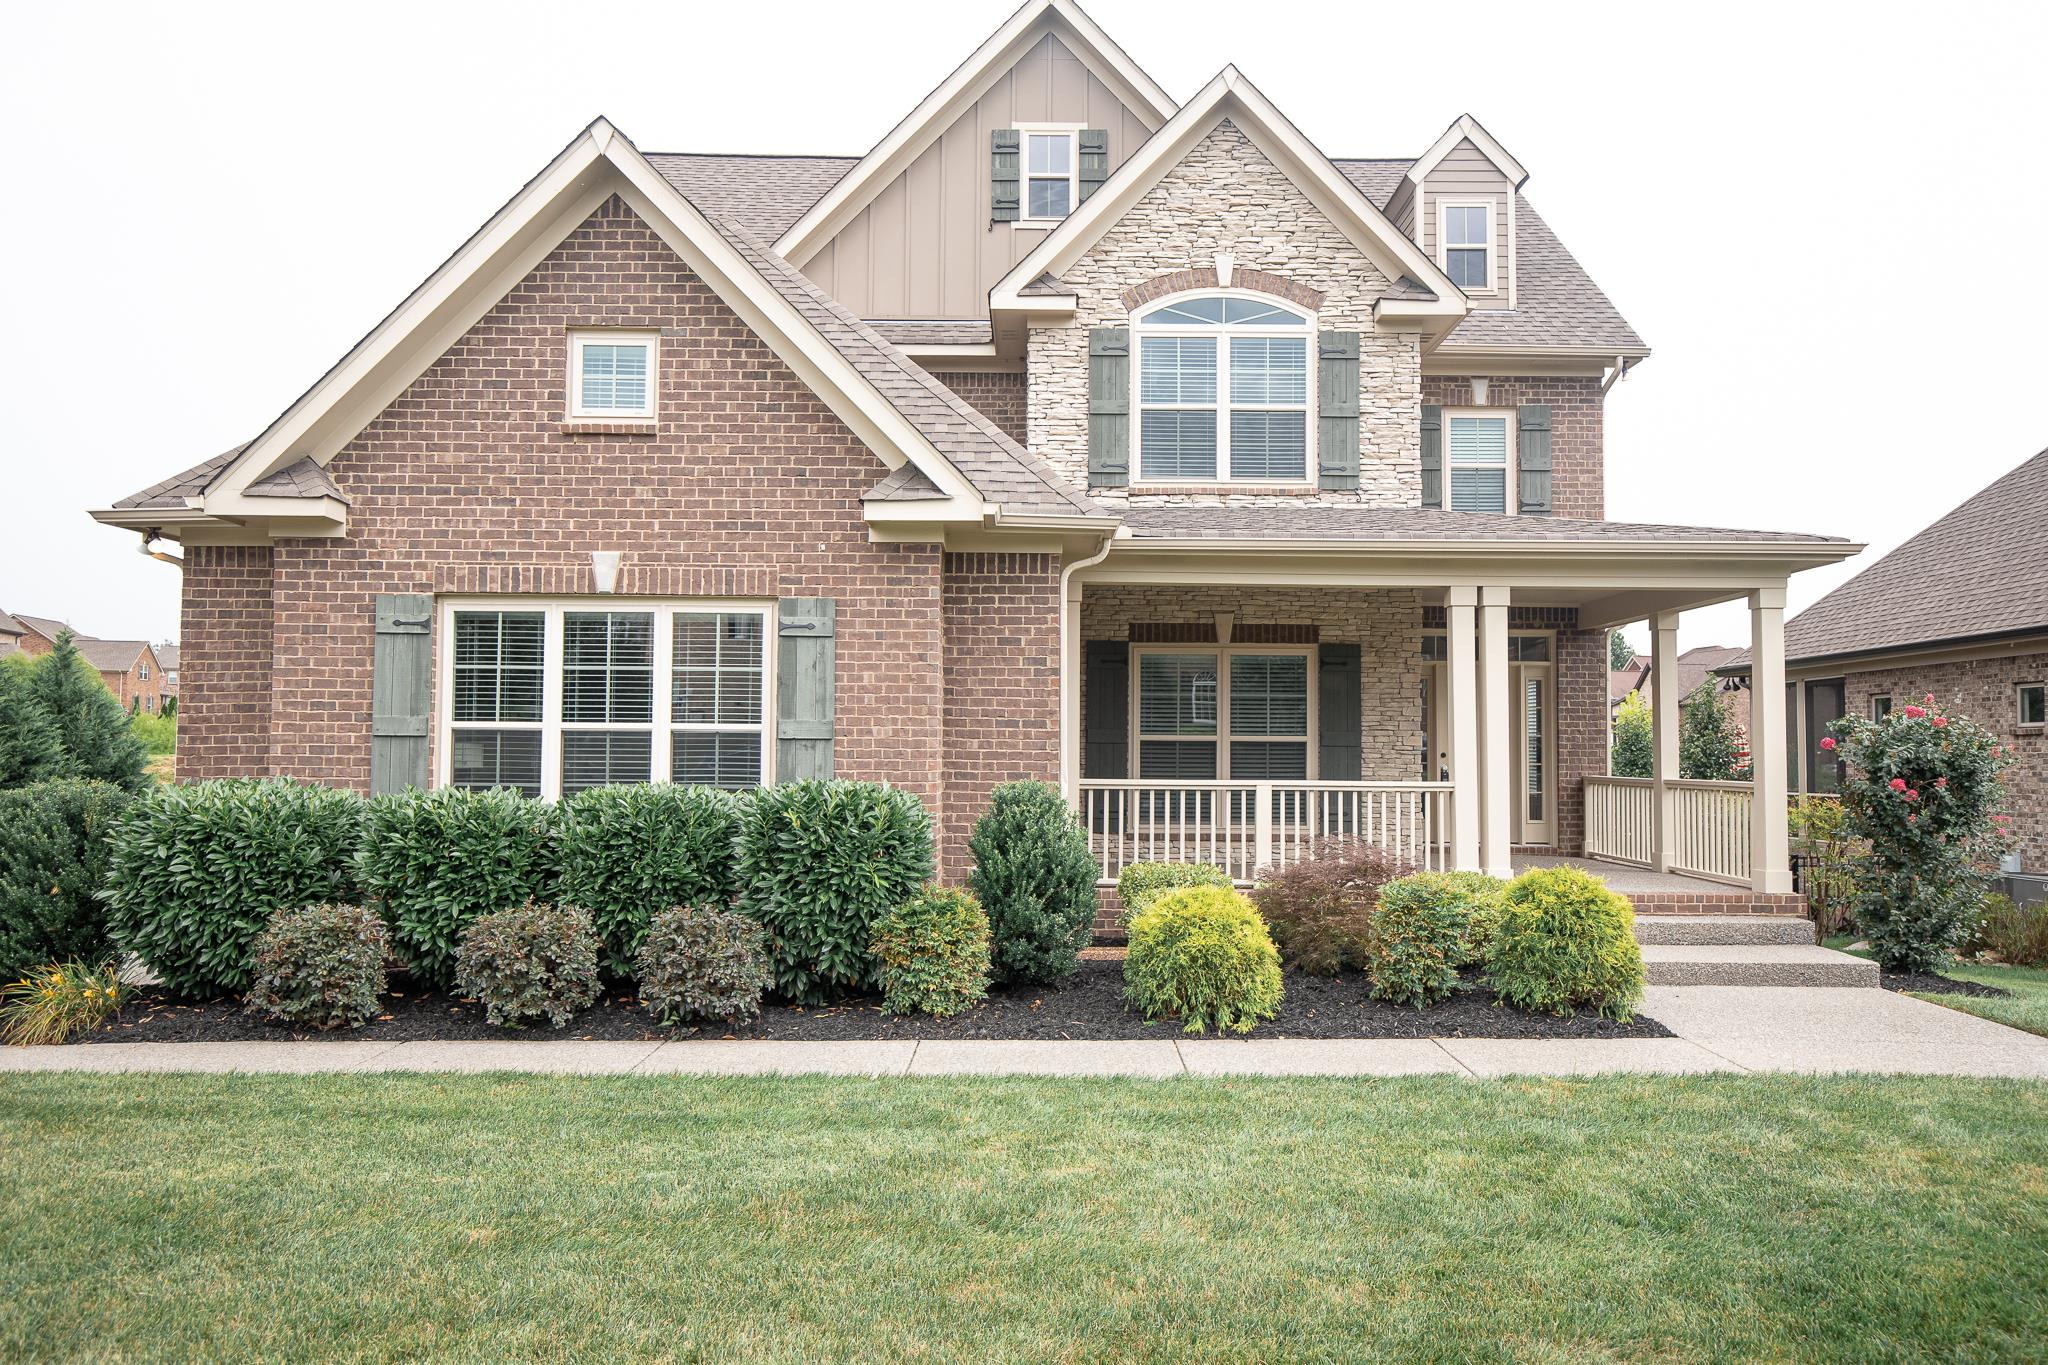 4009 Campania Strada Lot 85, Spring Hill, TN 37174 - Spring Hill, TN real estate listing